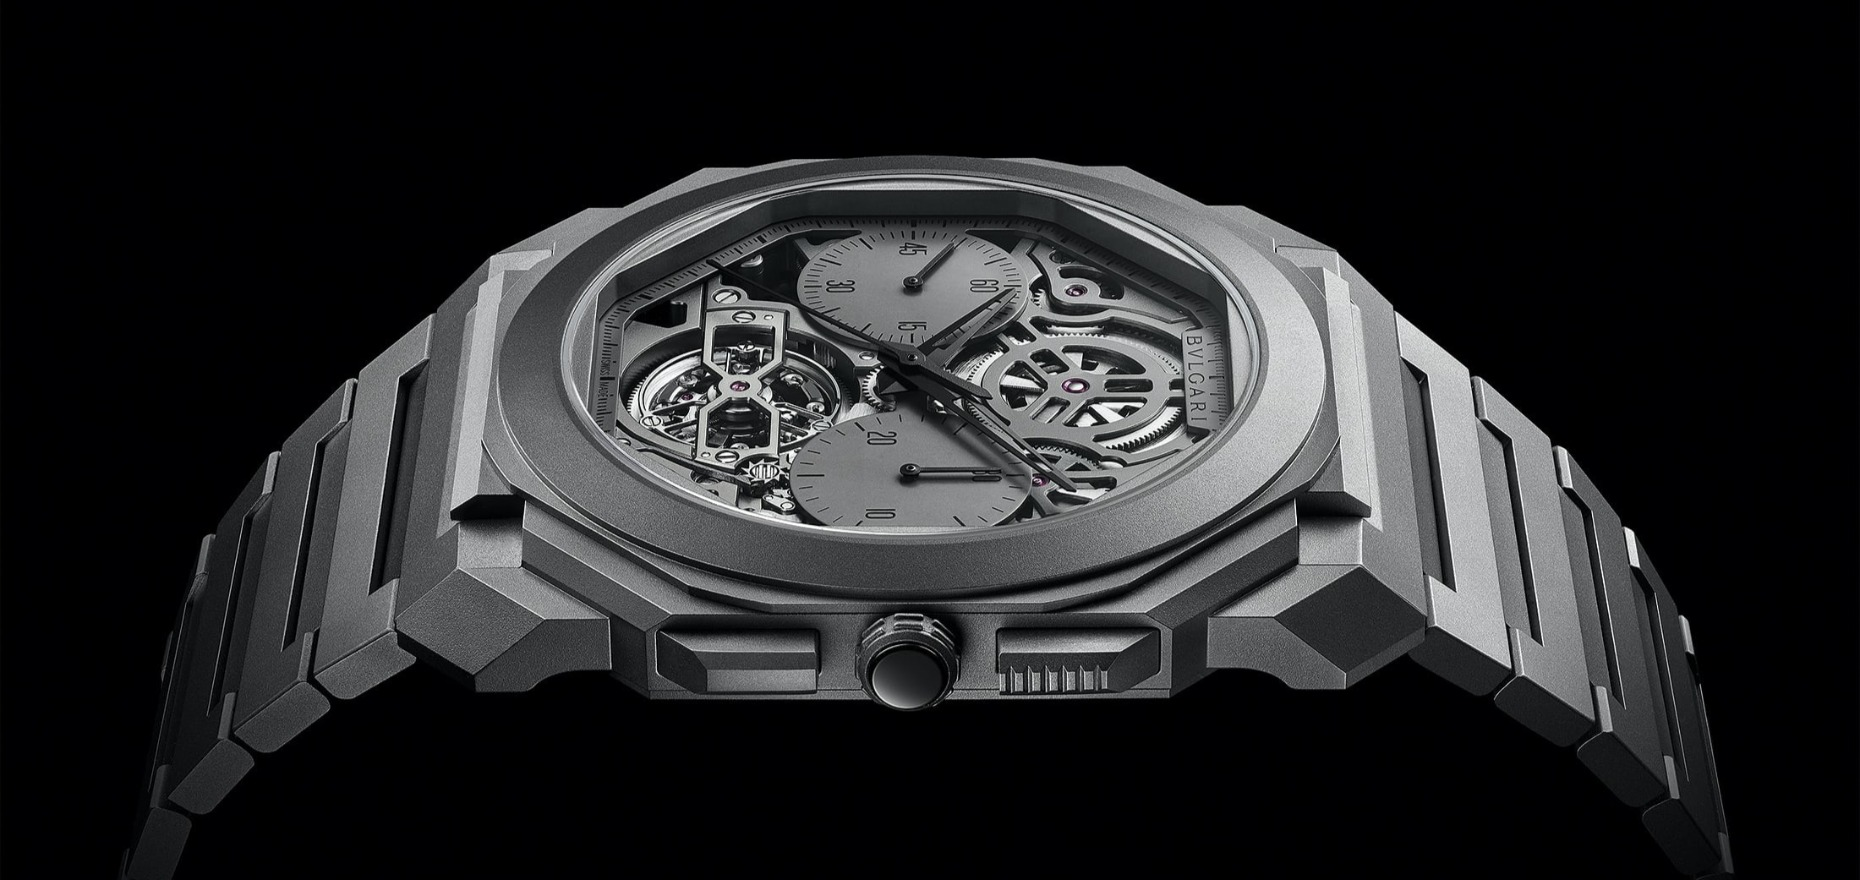 Six years, six world records: Bvlgari Octo Finissimo Tourbillon Chronograph Skeleton Automatic